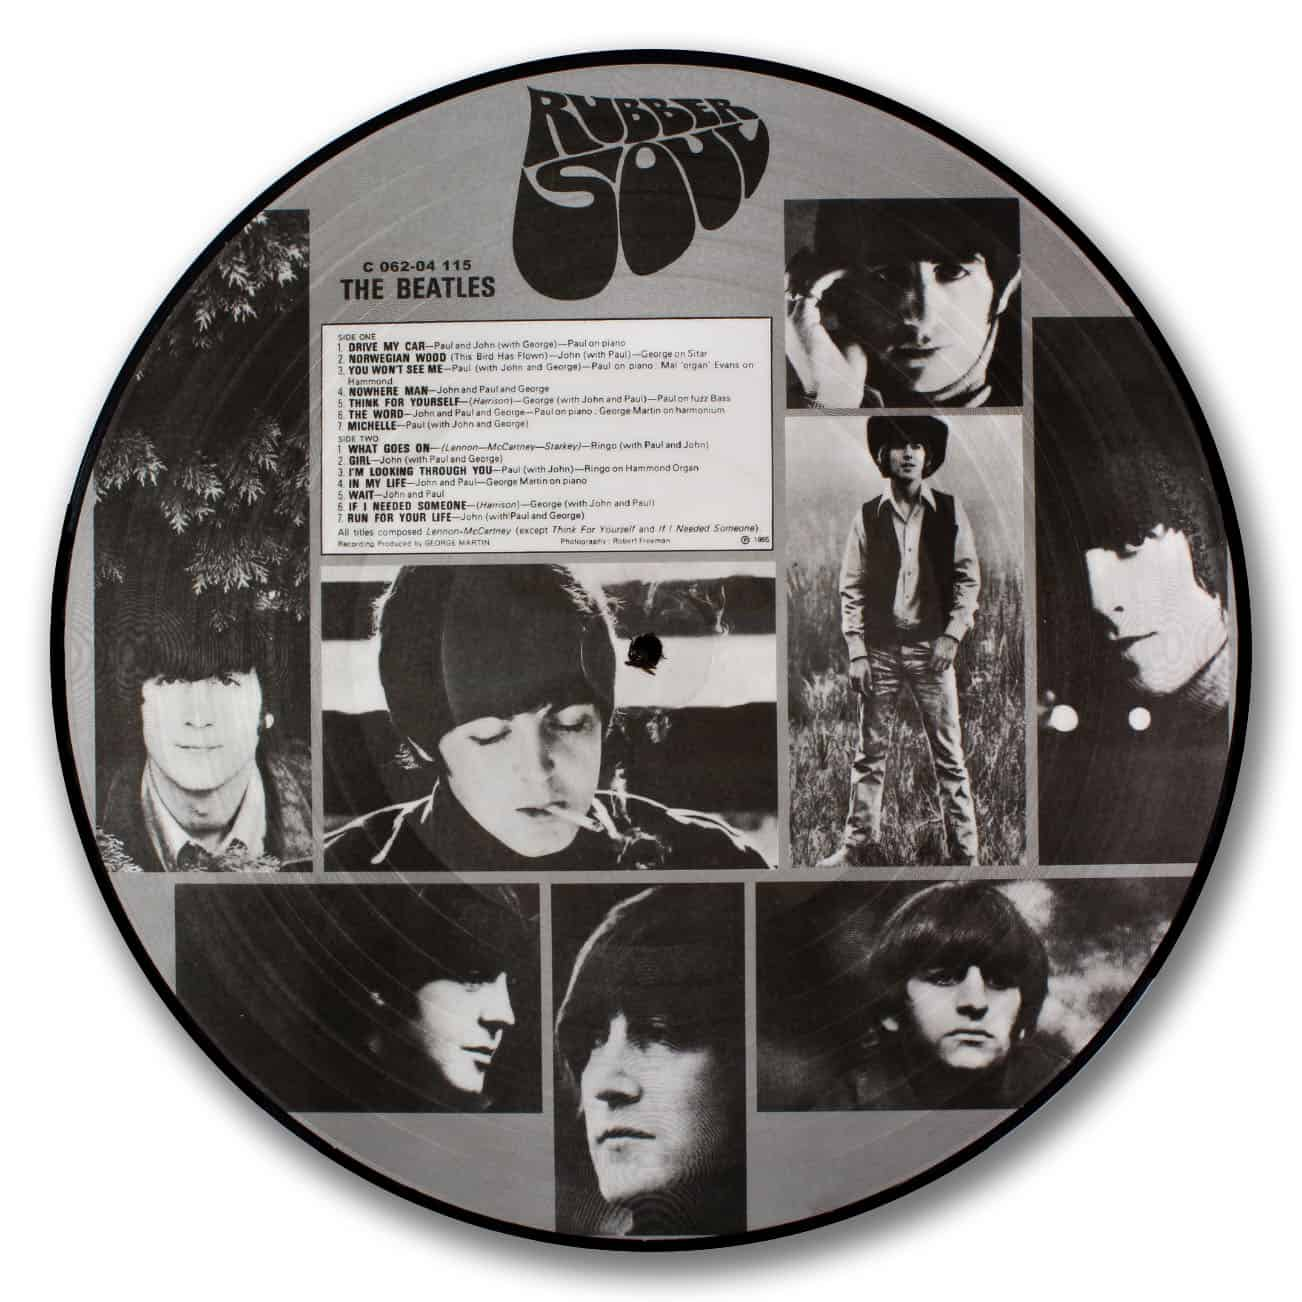 The Beatles, Rubber Soul Picture Disc